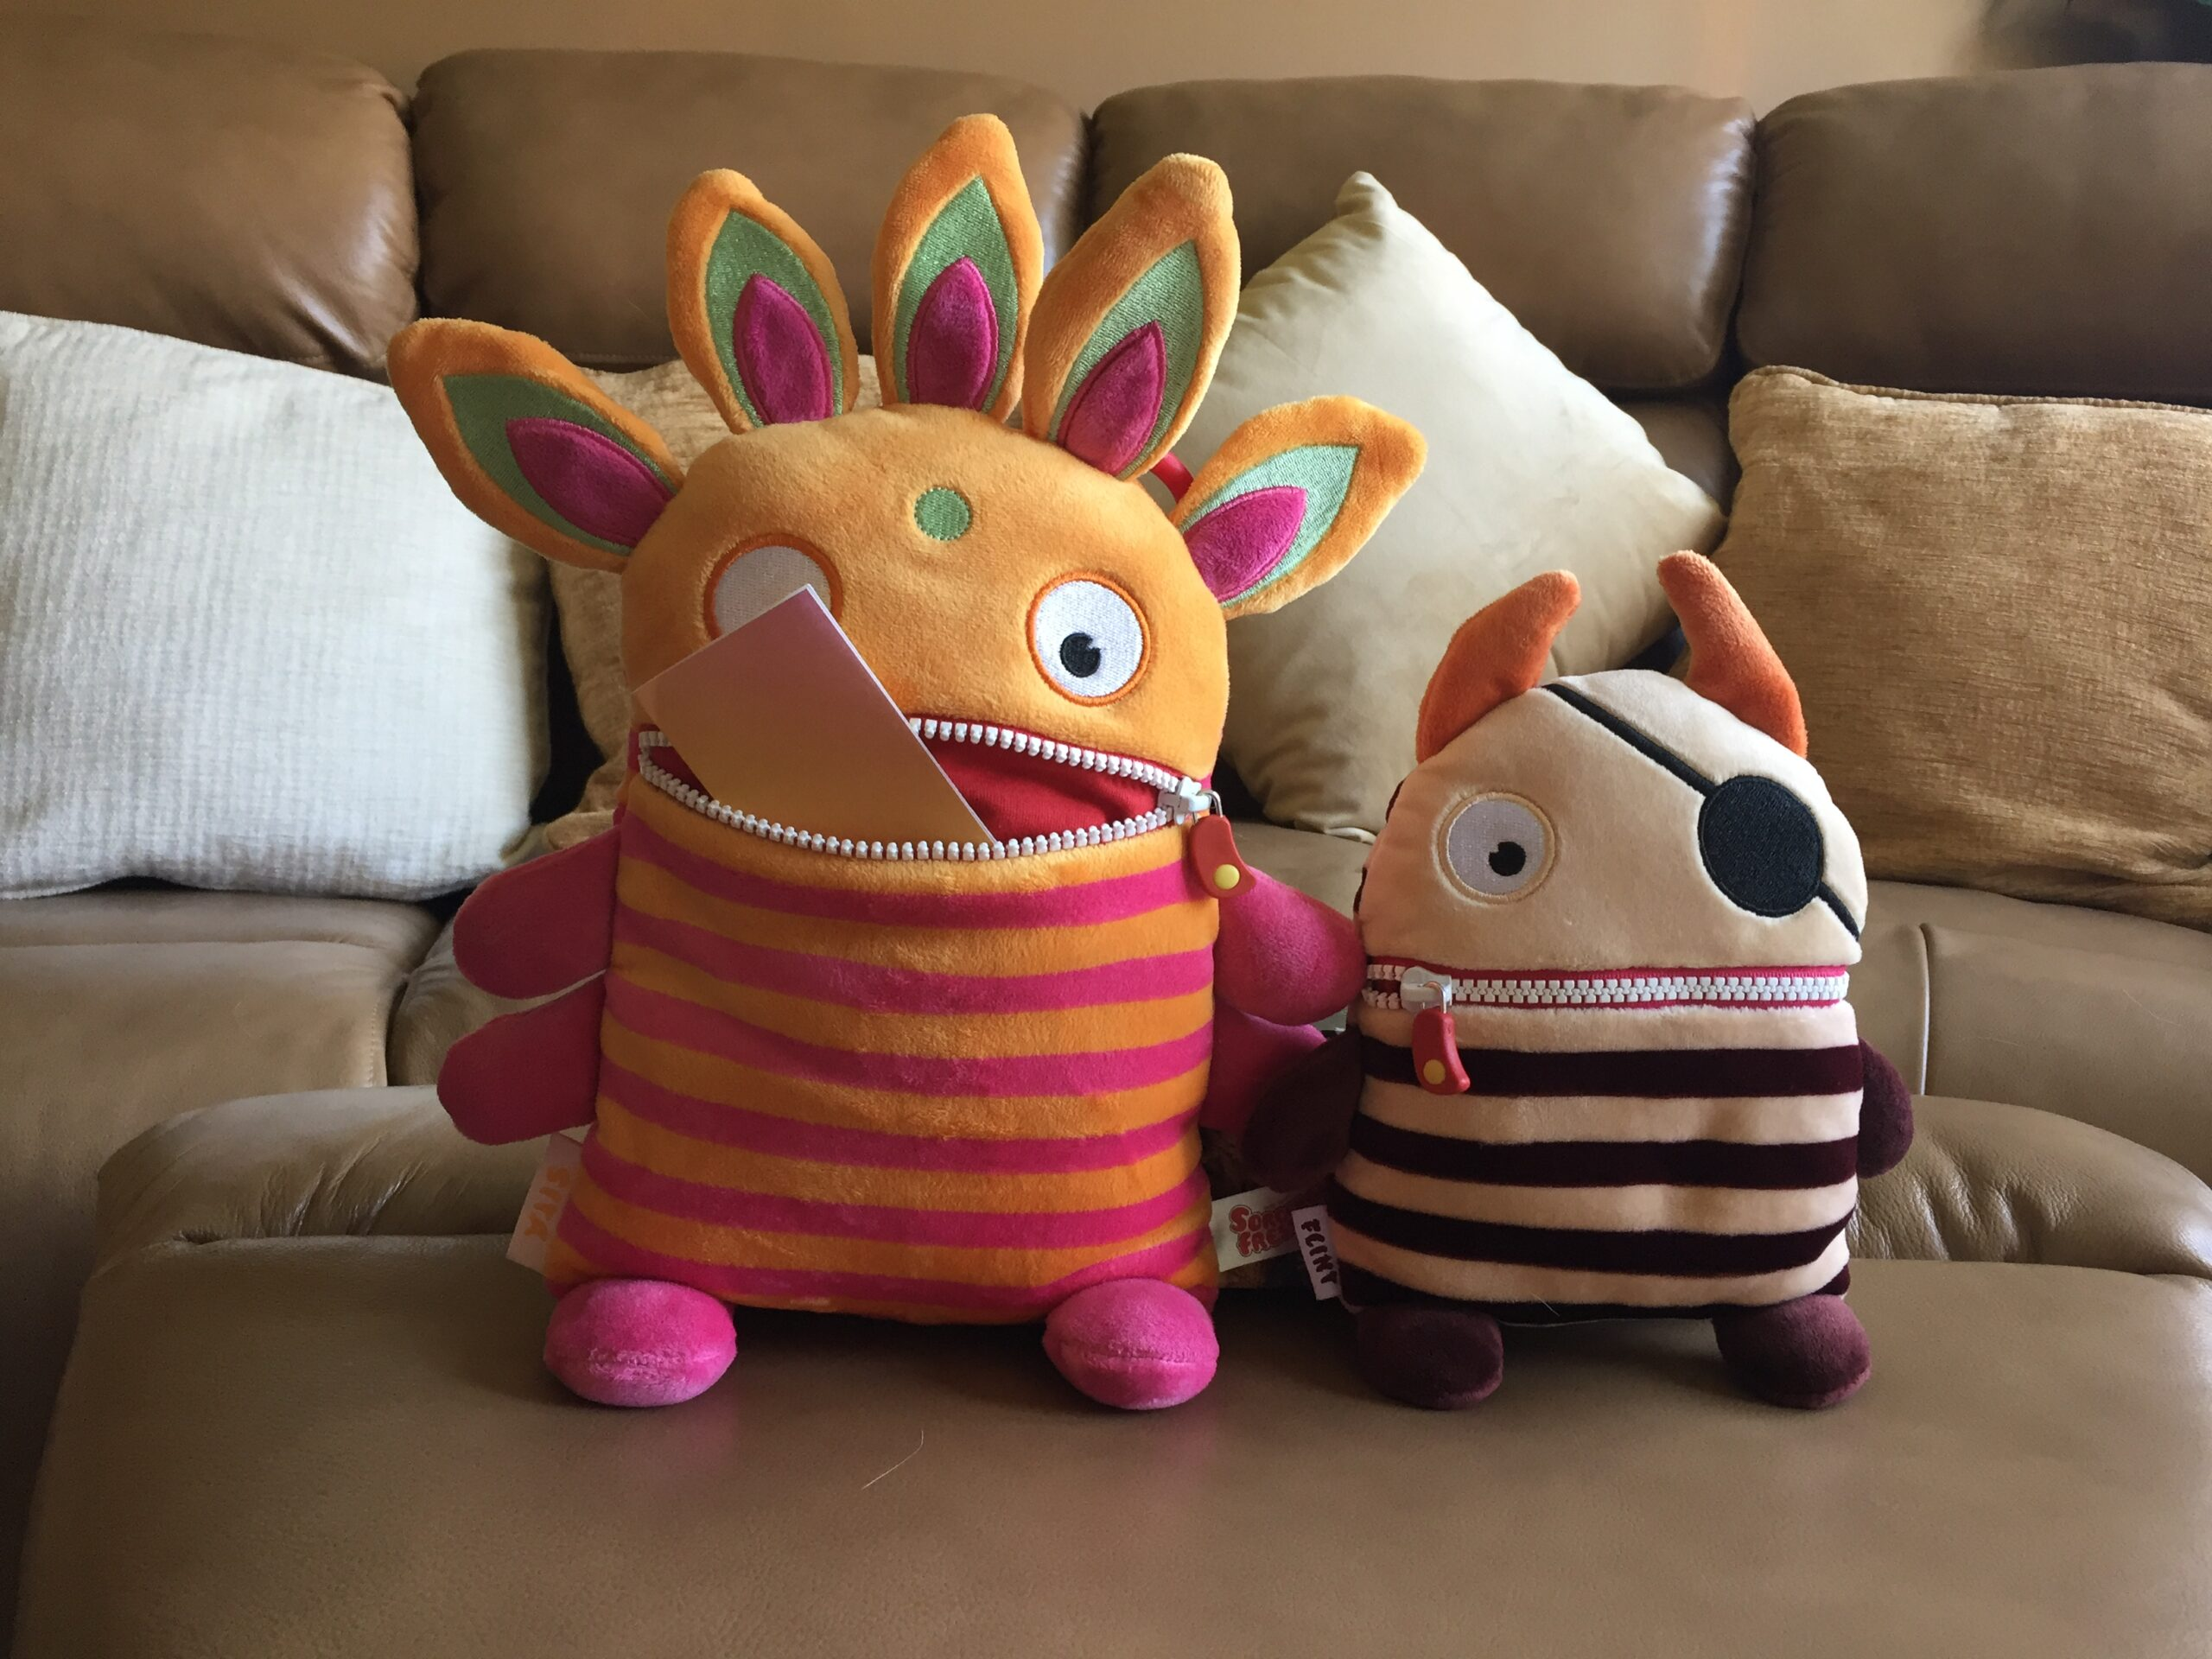 Two whimsical plush characters stand next to one another on a caramel coloured leather footstool in front of a matching sofa covered in cushions of varied natural colours. Both plushes have horizontal striped bodies of alternating colours, big round eyes and a zip mouth. Sita on the left is about one third taller, and has five protrusions from the top of its head that look like flames, each coloured pink, white and light orange. It has small pink round feet and butterfly wings, its body stripes are pink and light orange, and its face is light orange, with a light blue spot in the centre of its forehead. Its mouth is unzipped, holding a piece of rainbow coloured paper. On the right, Flint's stripes are coloured chocolate and latte, with a latte coloured face and chocolate coloured hands and feet. A pirate patch covers the left eye, and two caramel coloured horns curl gently towards one another, the left one slightly longer than the right.